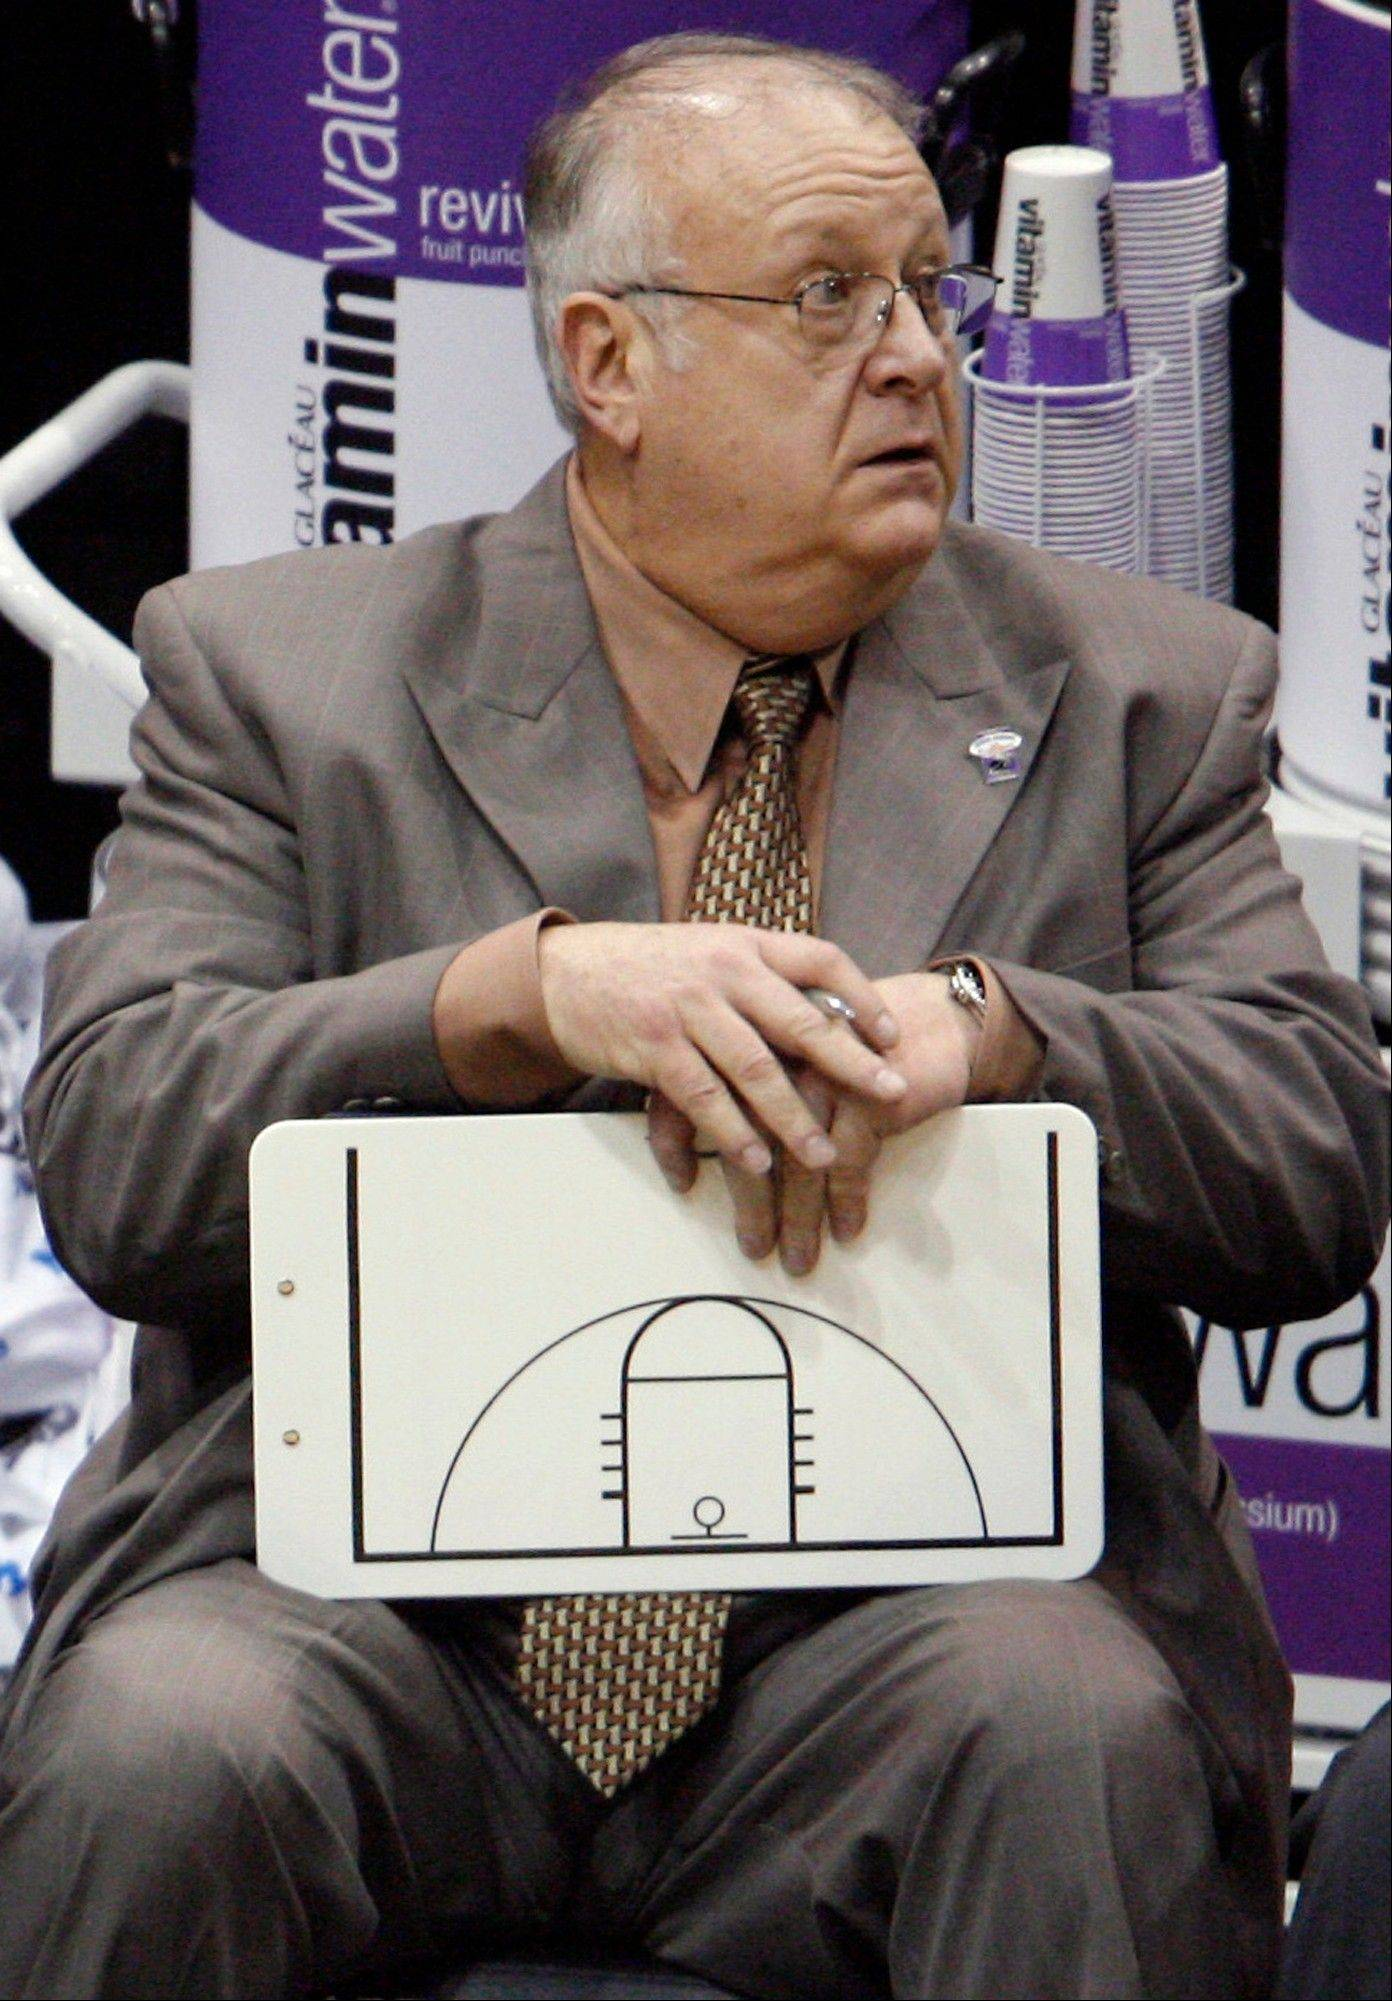 Syracuse assistant basketball coach Bernie Fine sits on the bench at the end an NCAA West Regional semifinal college basketball game against Butler in Salt Lake City. Federal authorities have dropped their investigation into sexual abuse claims that cost Fine his job. After a probe spanning nearly a year, U.S. Attorney Richard Hartunian said Friday there was no evidence to support claims that Fine had molested a boy in 2002 in a Pittsburgh hotel room.